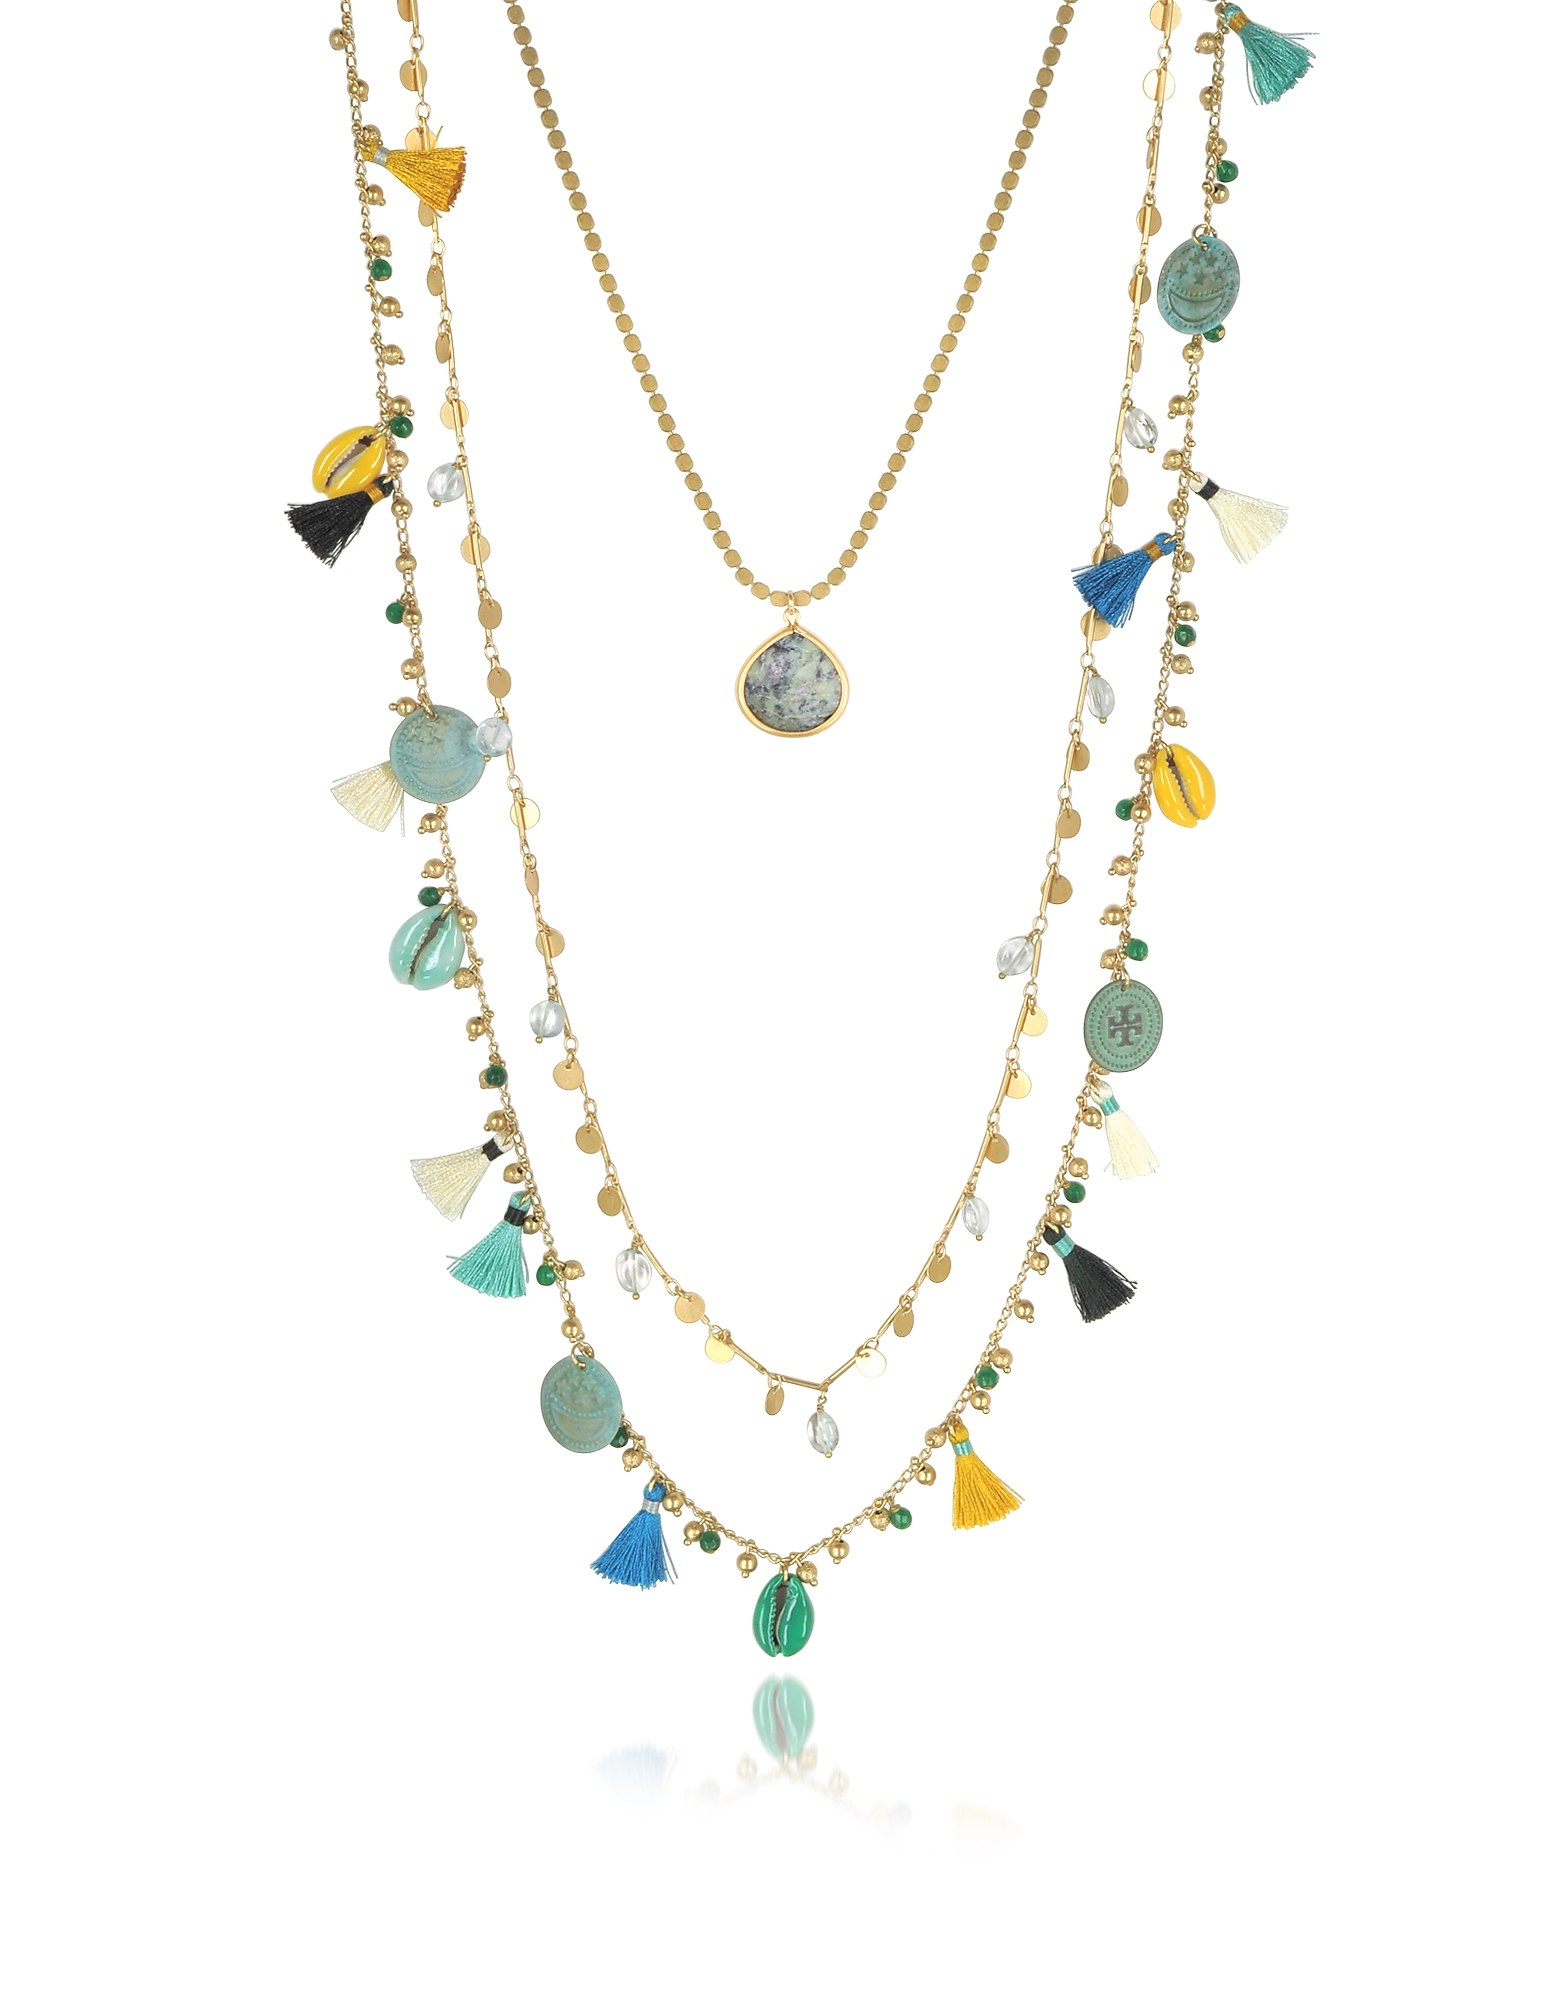 Tory Burch Necklaces, Blue and vintage Gold Coin and Tassels Multi-layering Necklace